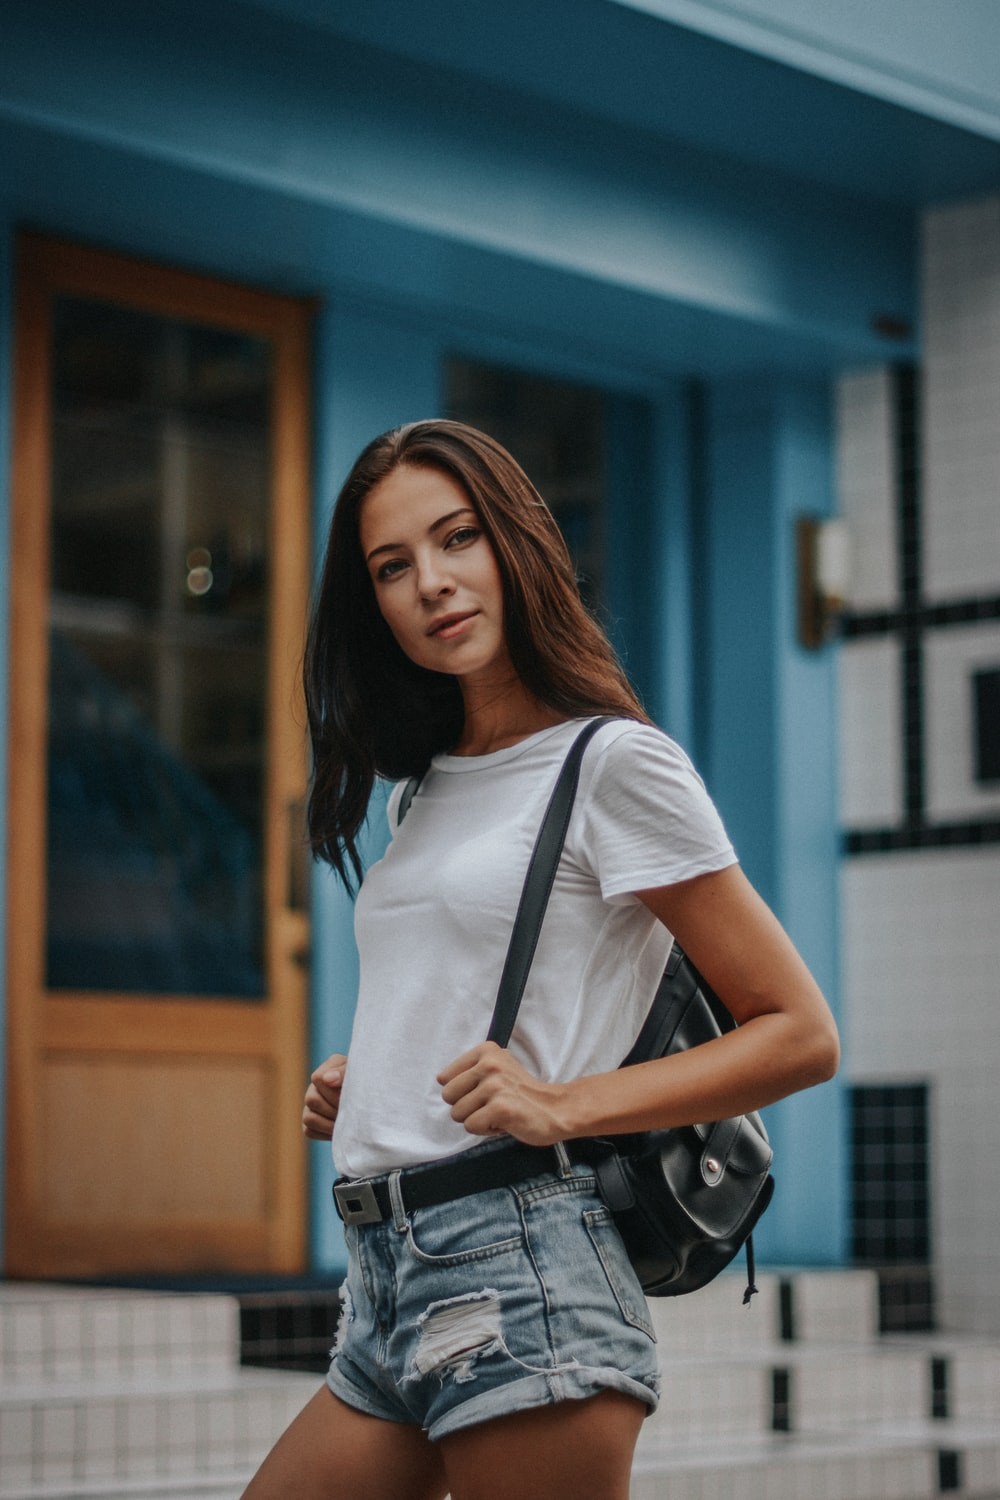 woman in white shirt standing